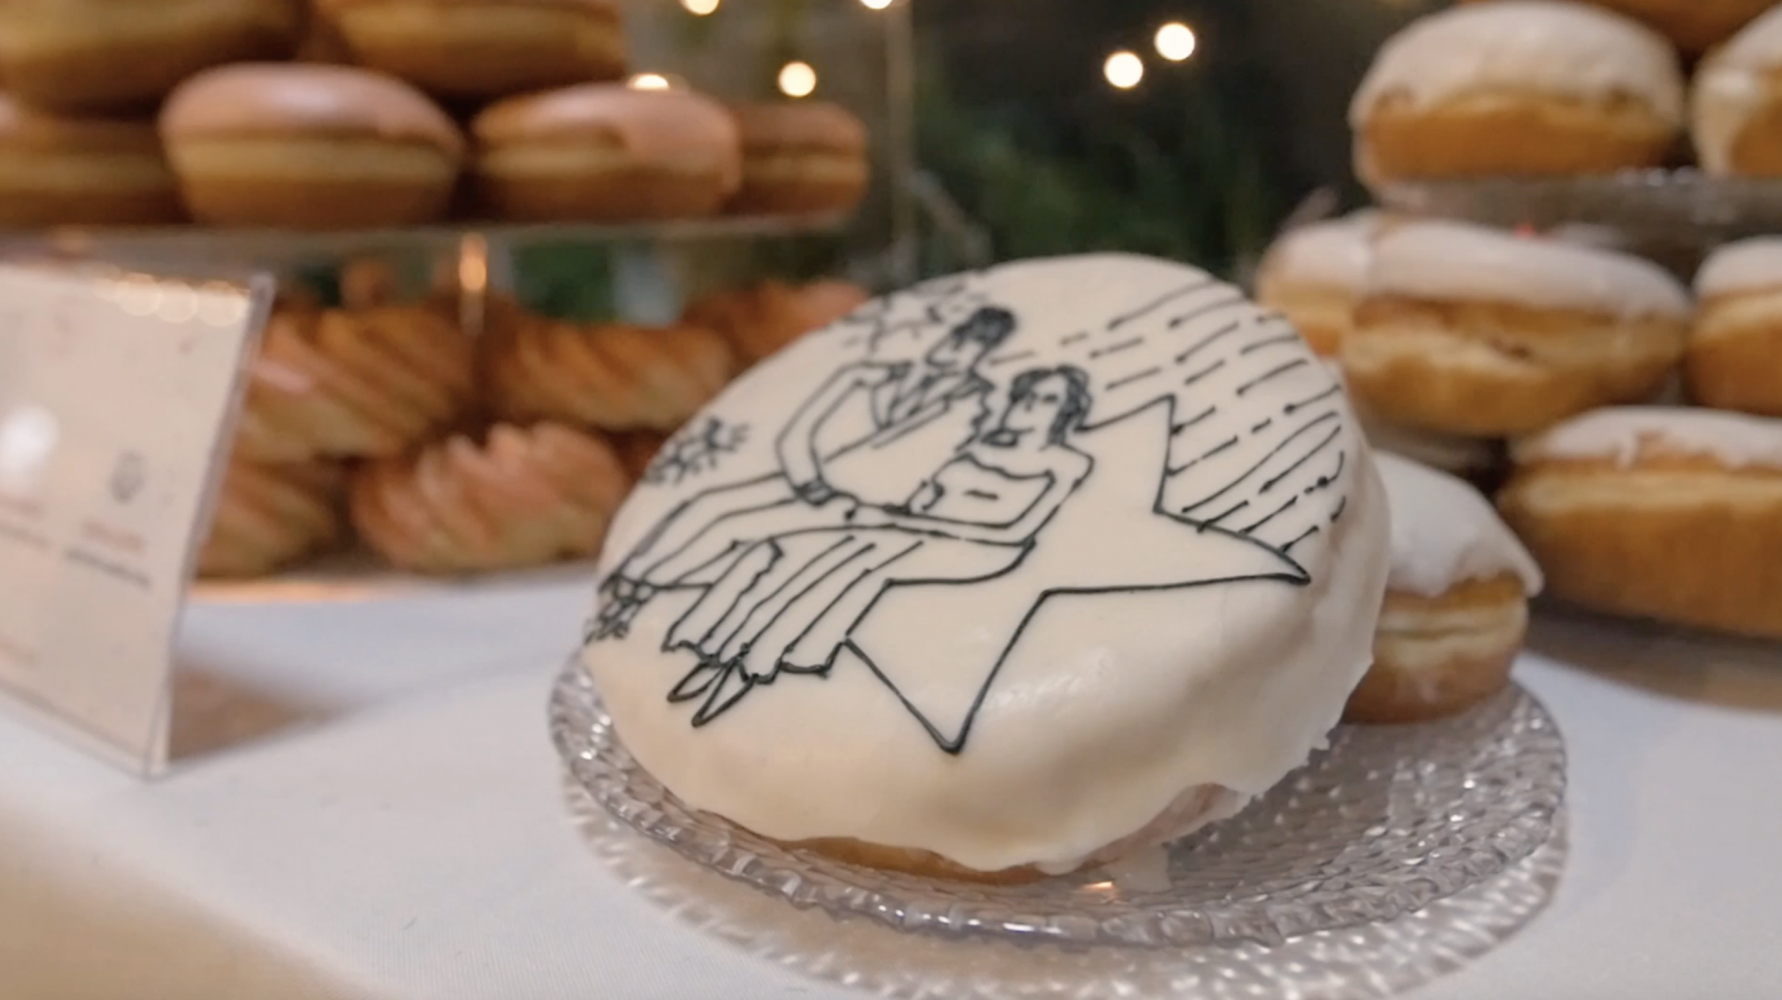 After The World's Cutest Donut Proposal, This Couple Had The Most Epic Donut Display at Their Wedding